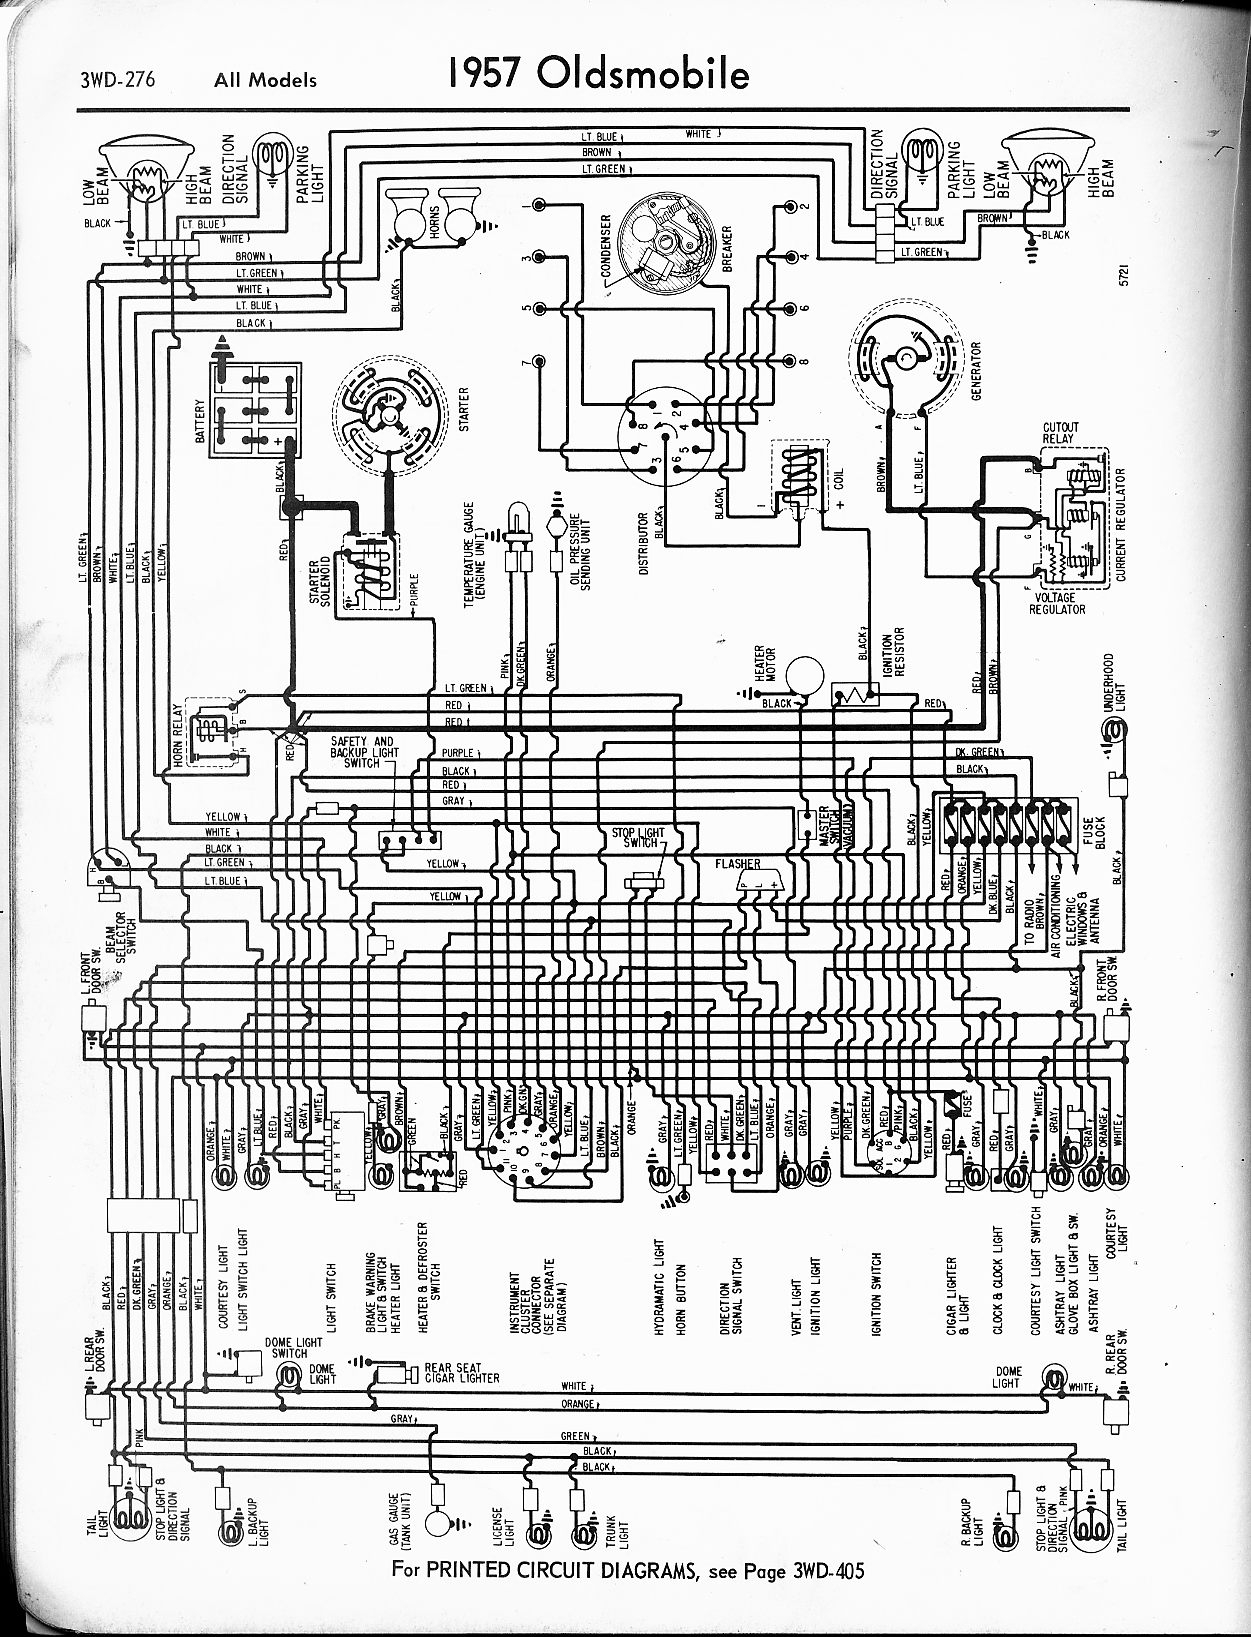 1964 Chevelle Wiring Diagram from wholefoodsonabudget.com